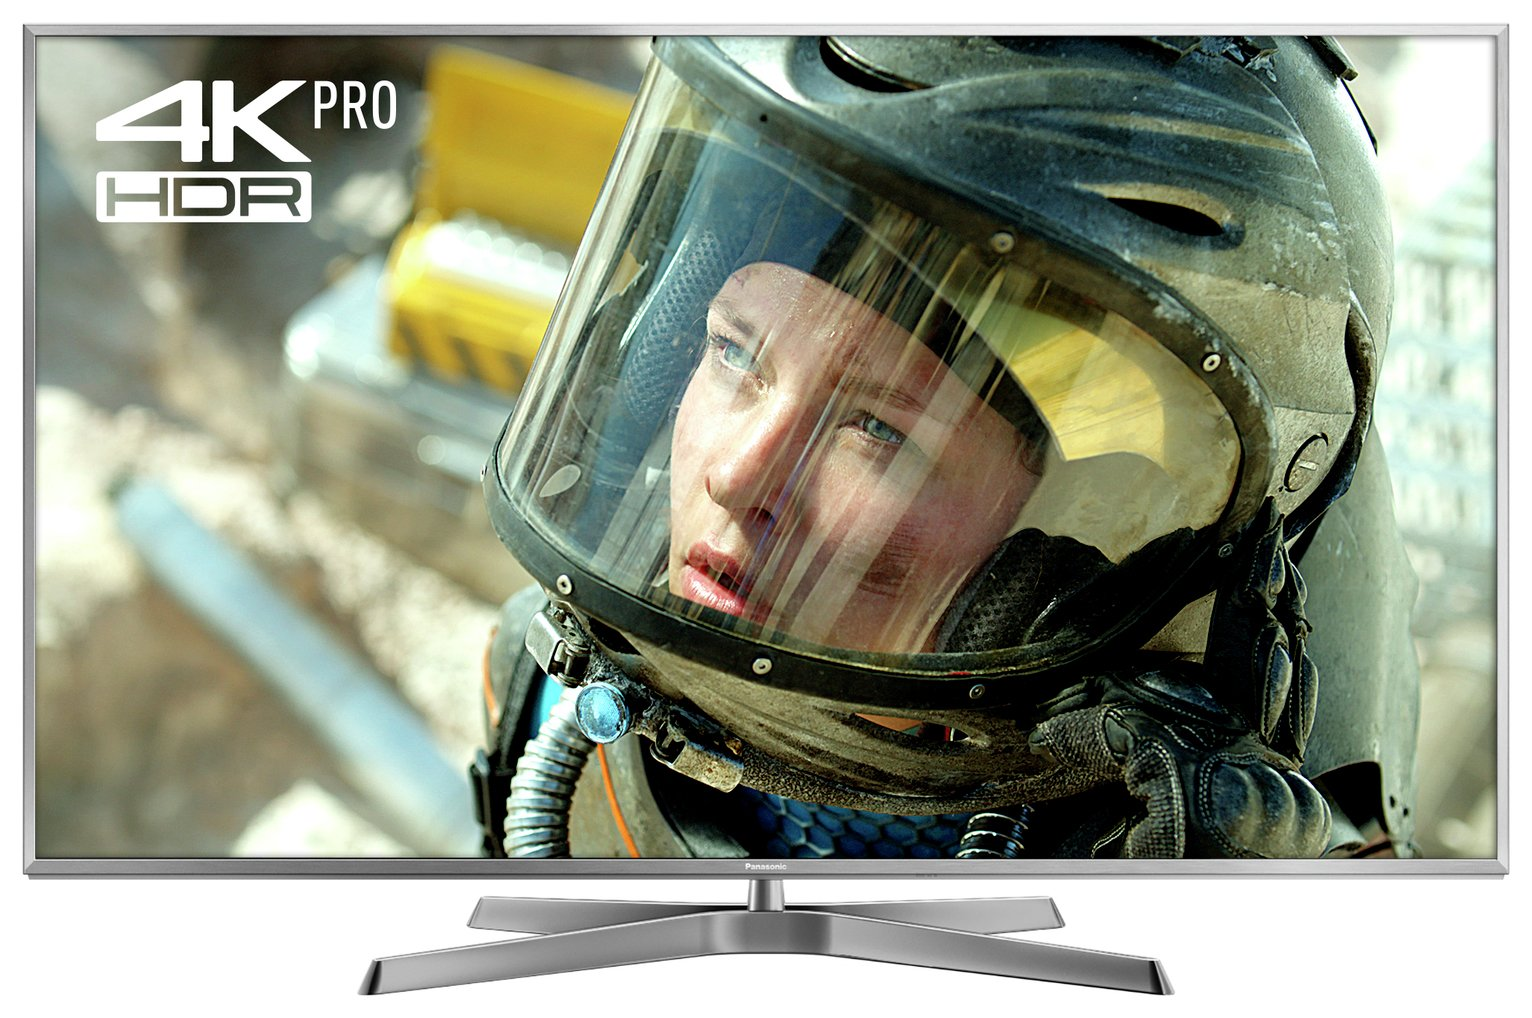 panasonic-tx-58ex750b-58-inch-4k-ultra-hd-smart-tv